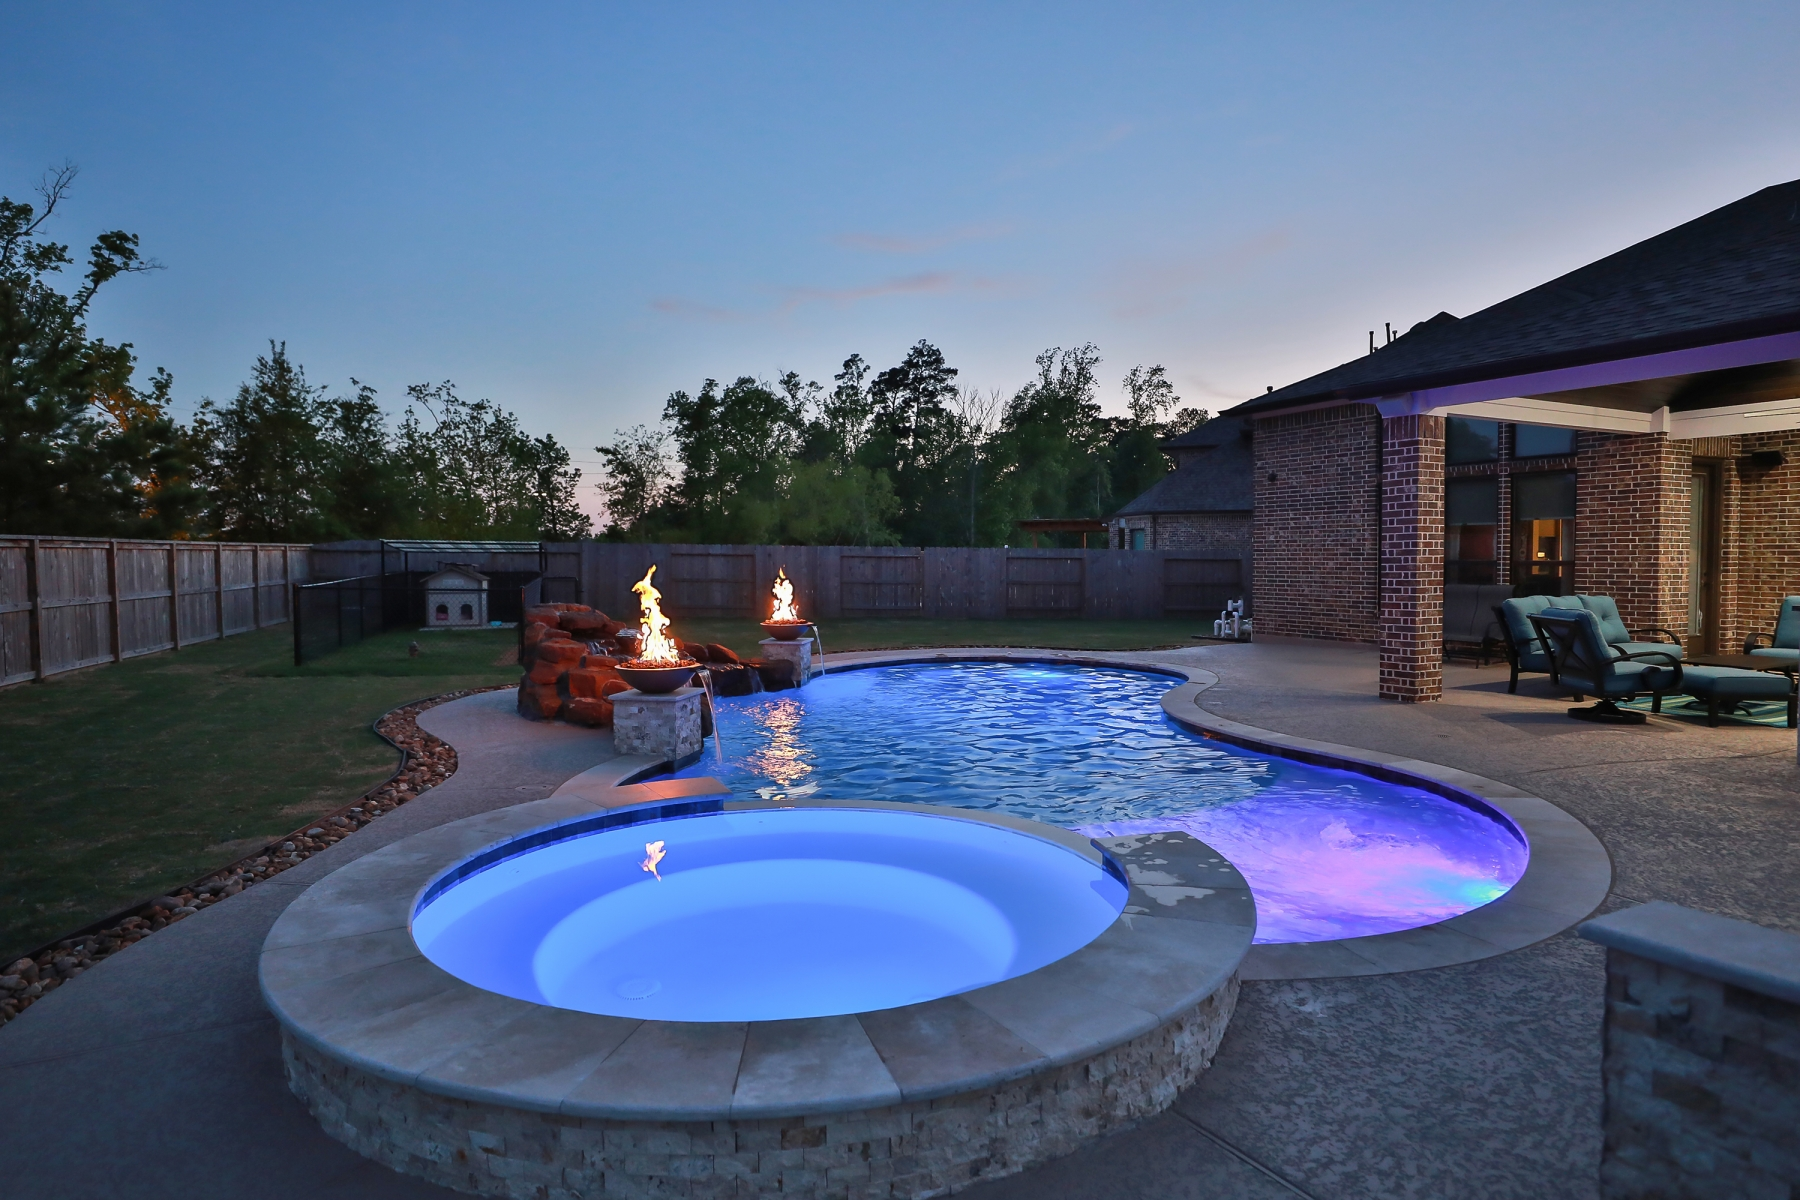 Spa View at Night - Freeform Pool with Rock Waterfall, Custom Lighting and Fire Bowls